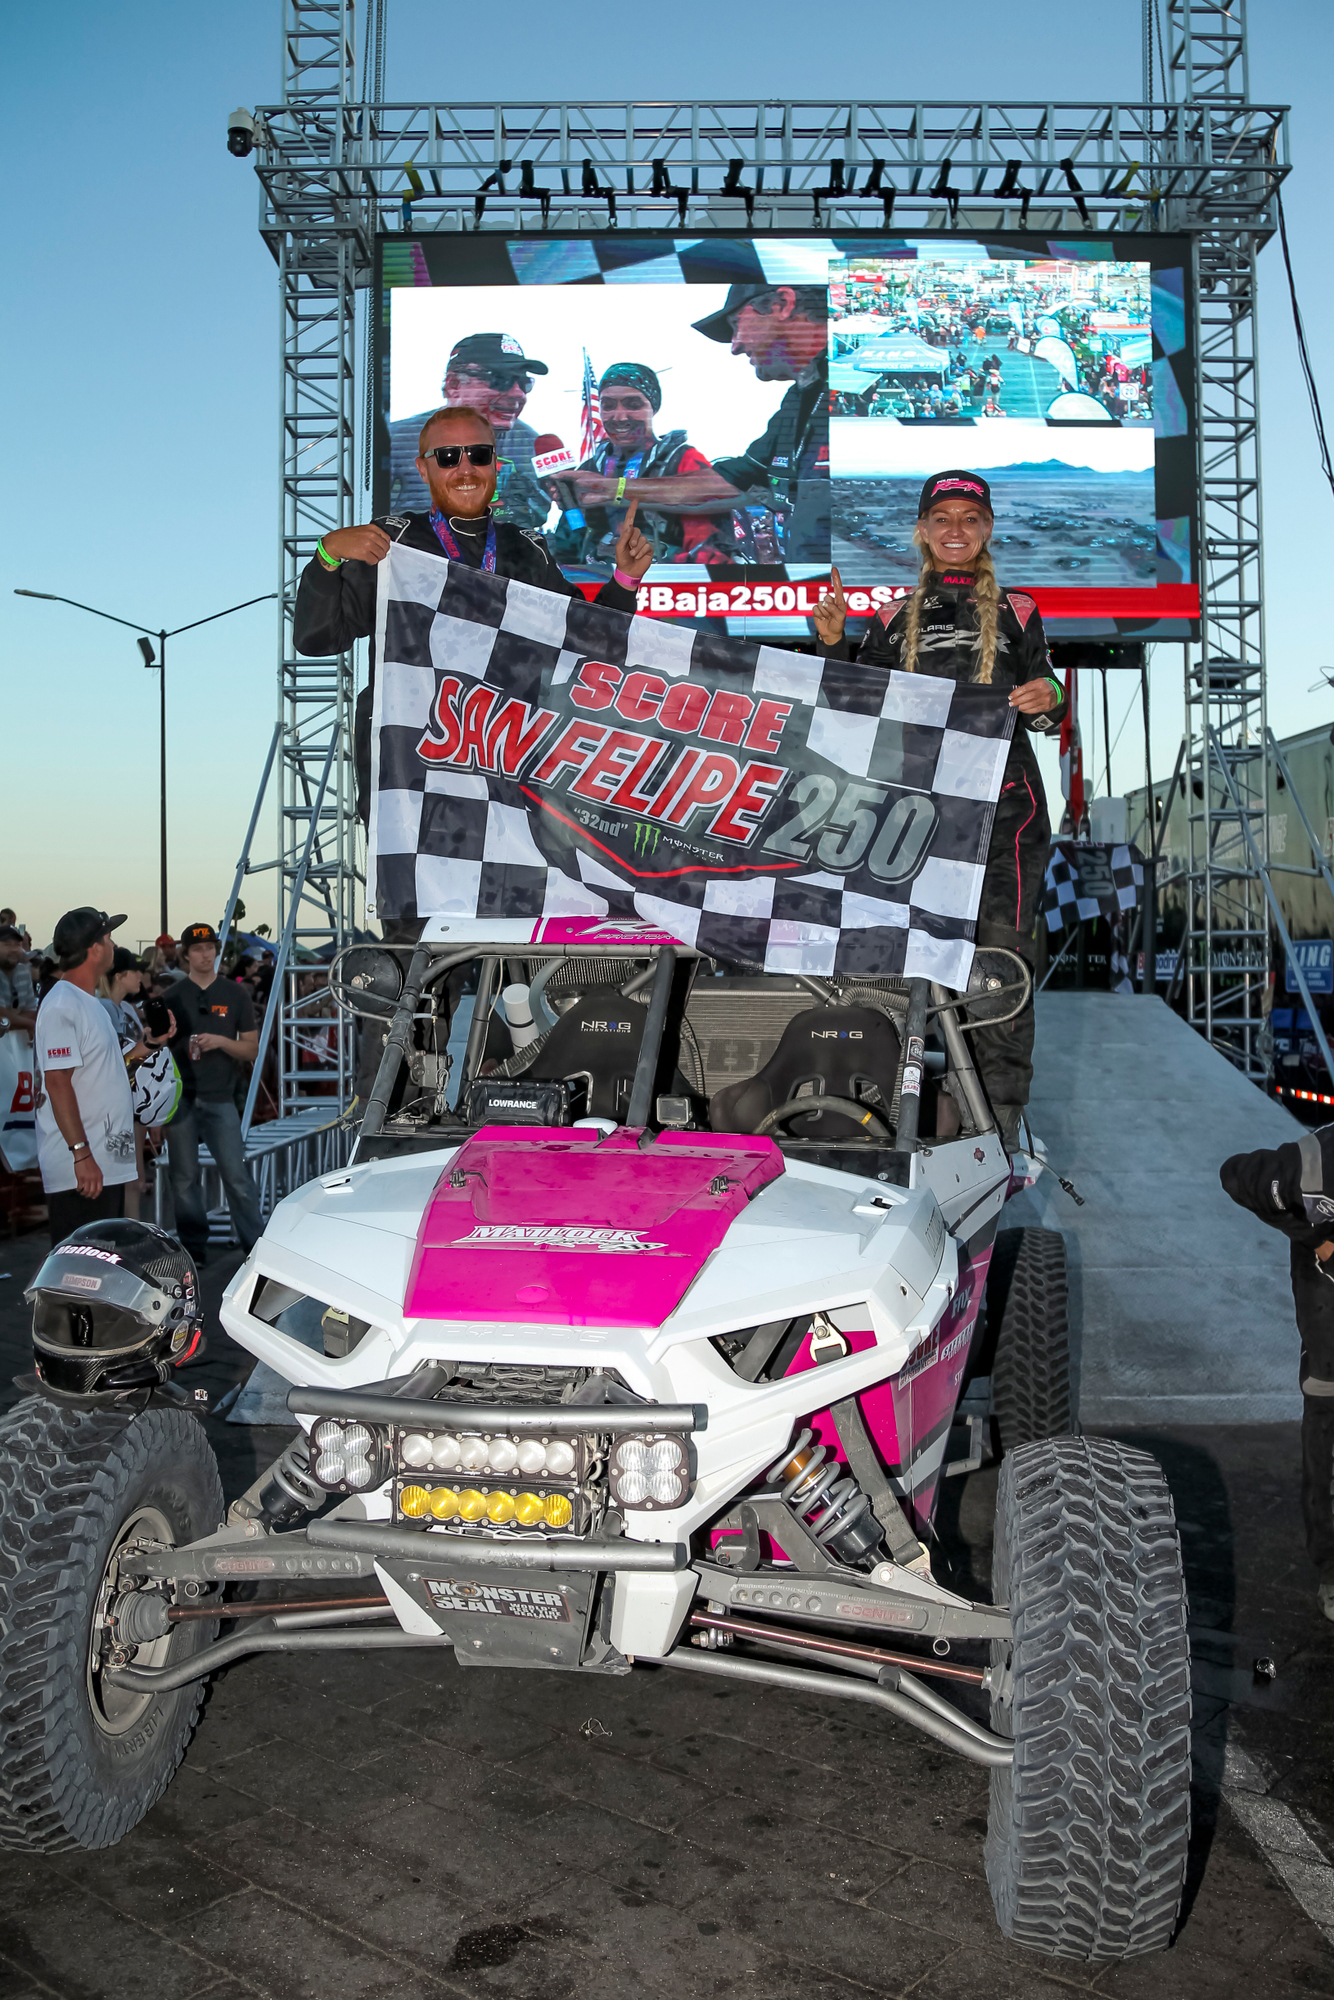 Polaris RZR Factory Racing - Kristen Matlock and Co-Driver Matthew Strandberg celebrate their victory